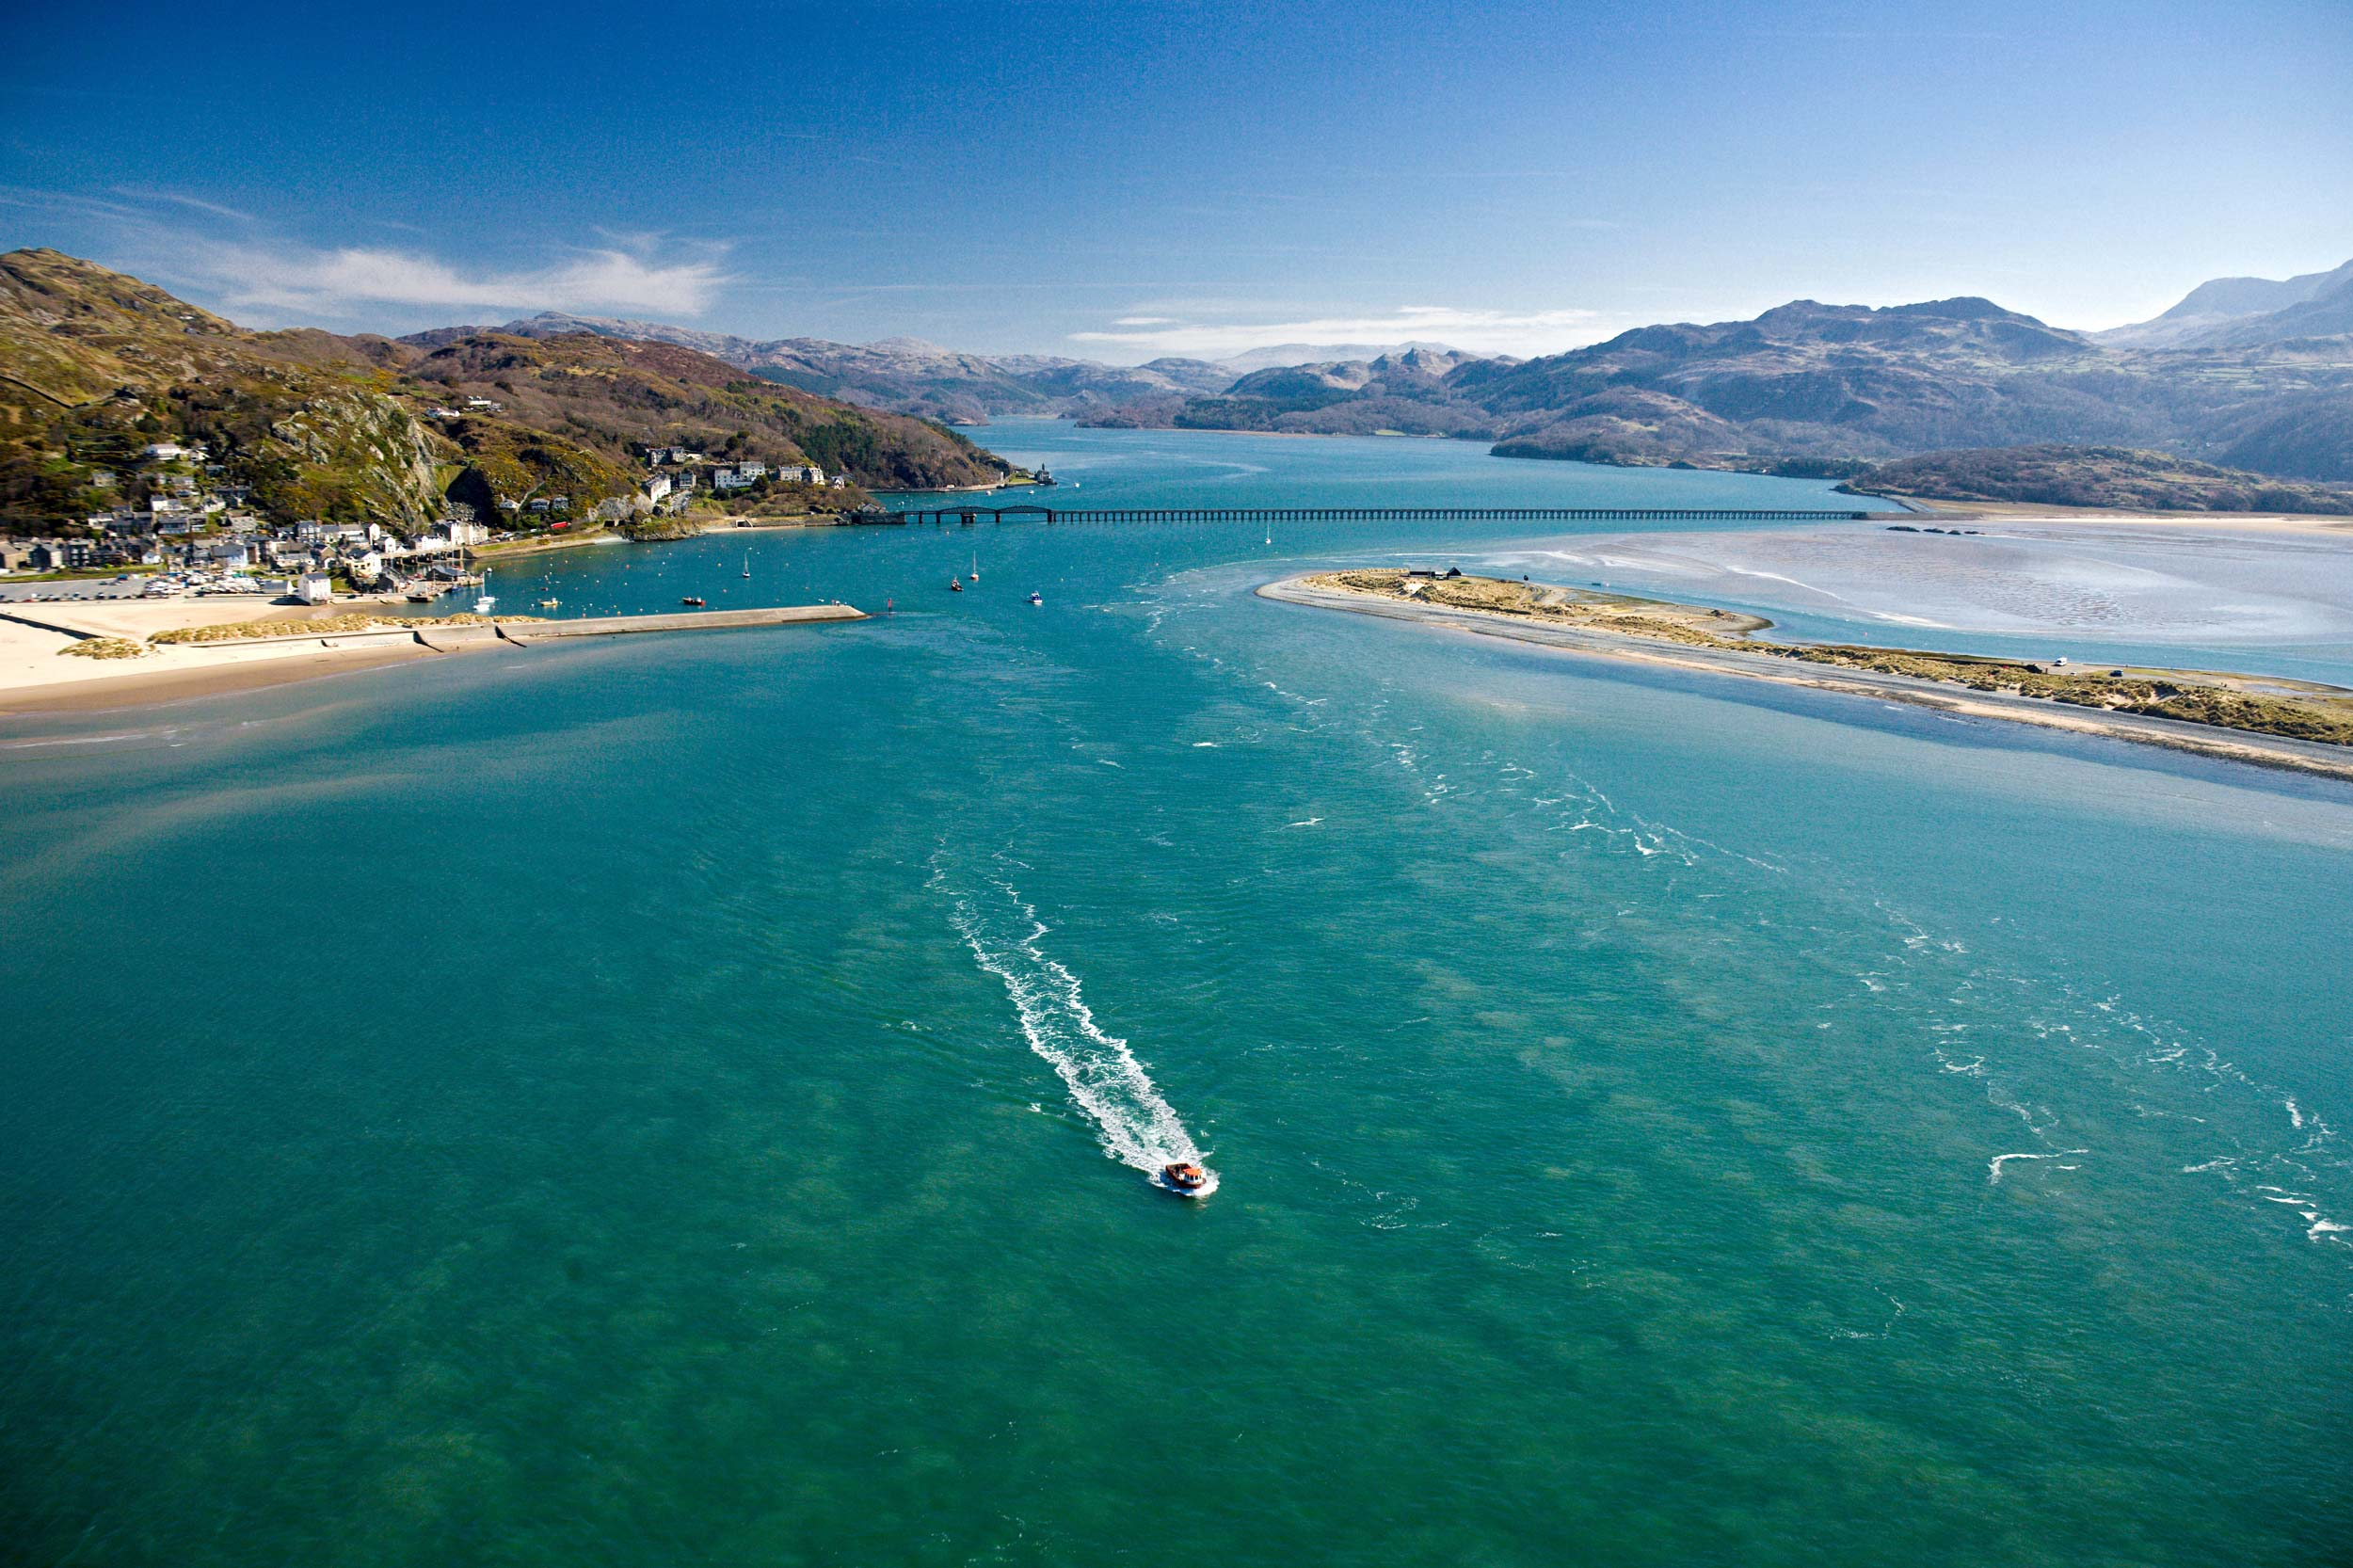 The view from Barmouth to the mountains of Snowdonia  (Crown copyright 2018 / Visit Wales)